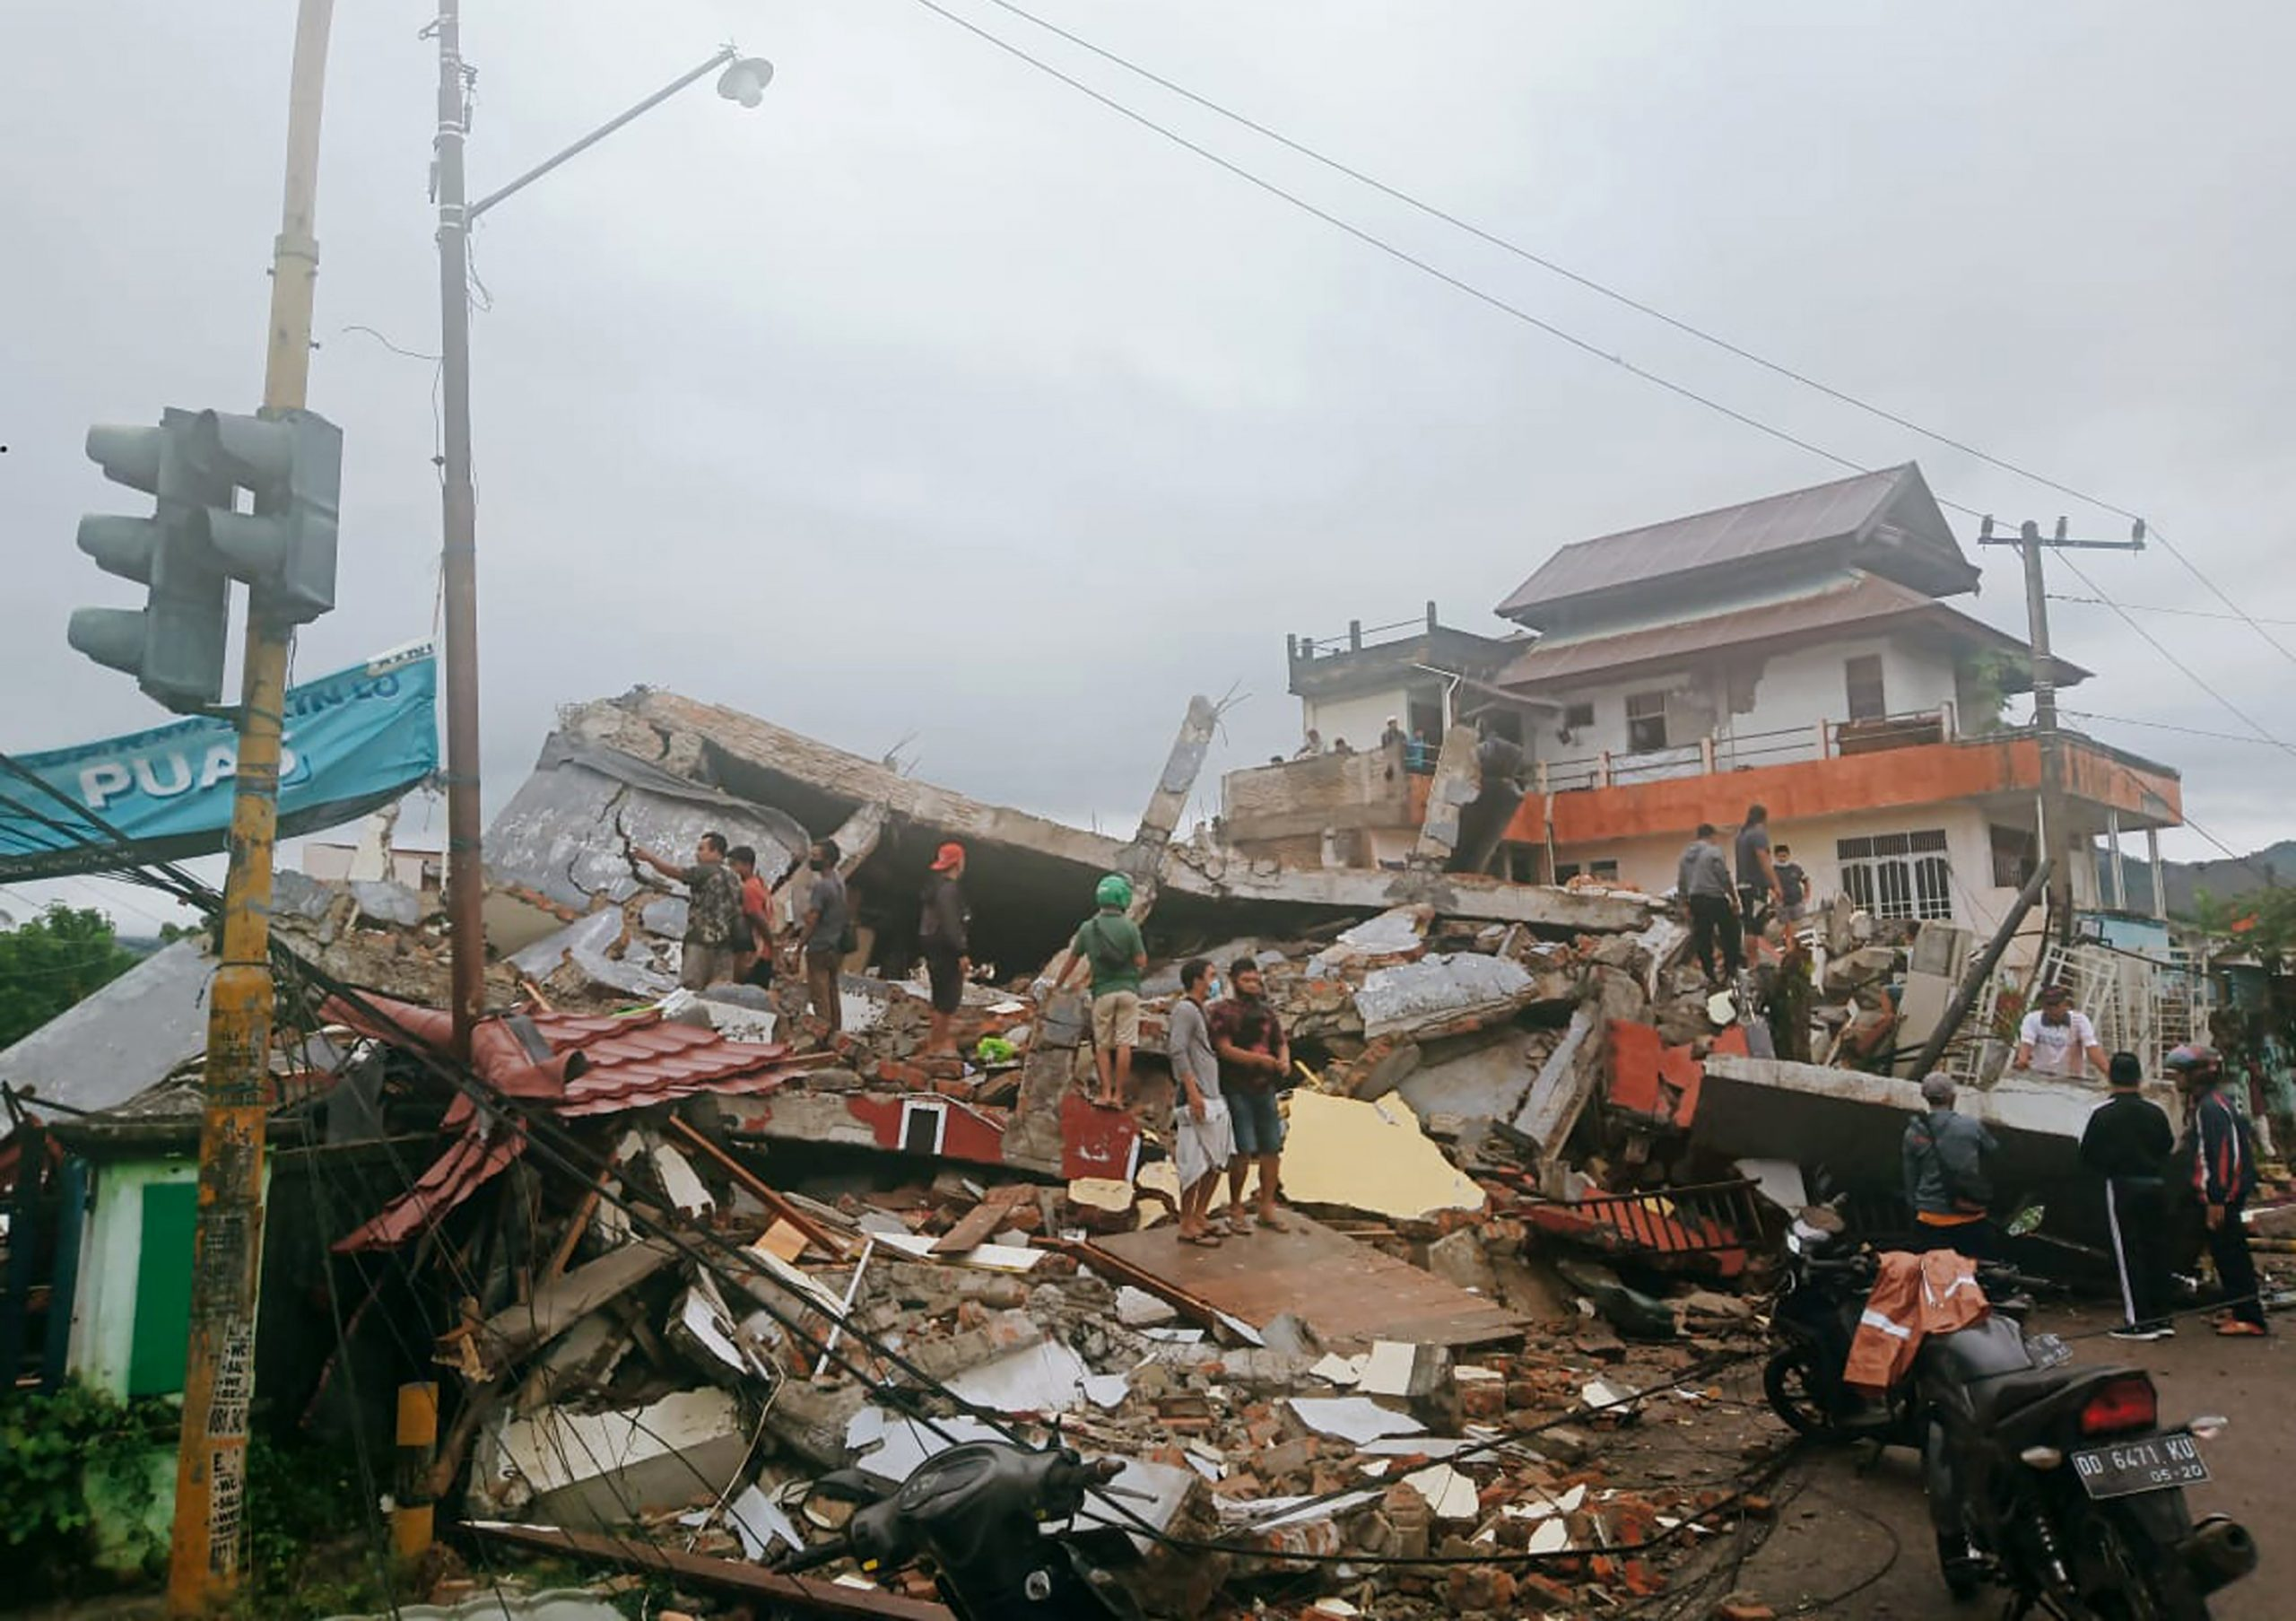 Earthquake triggers landslides, killing at least 3 in Indonesia